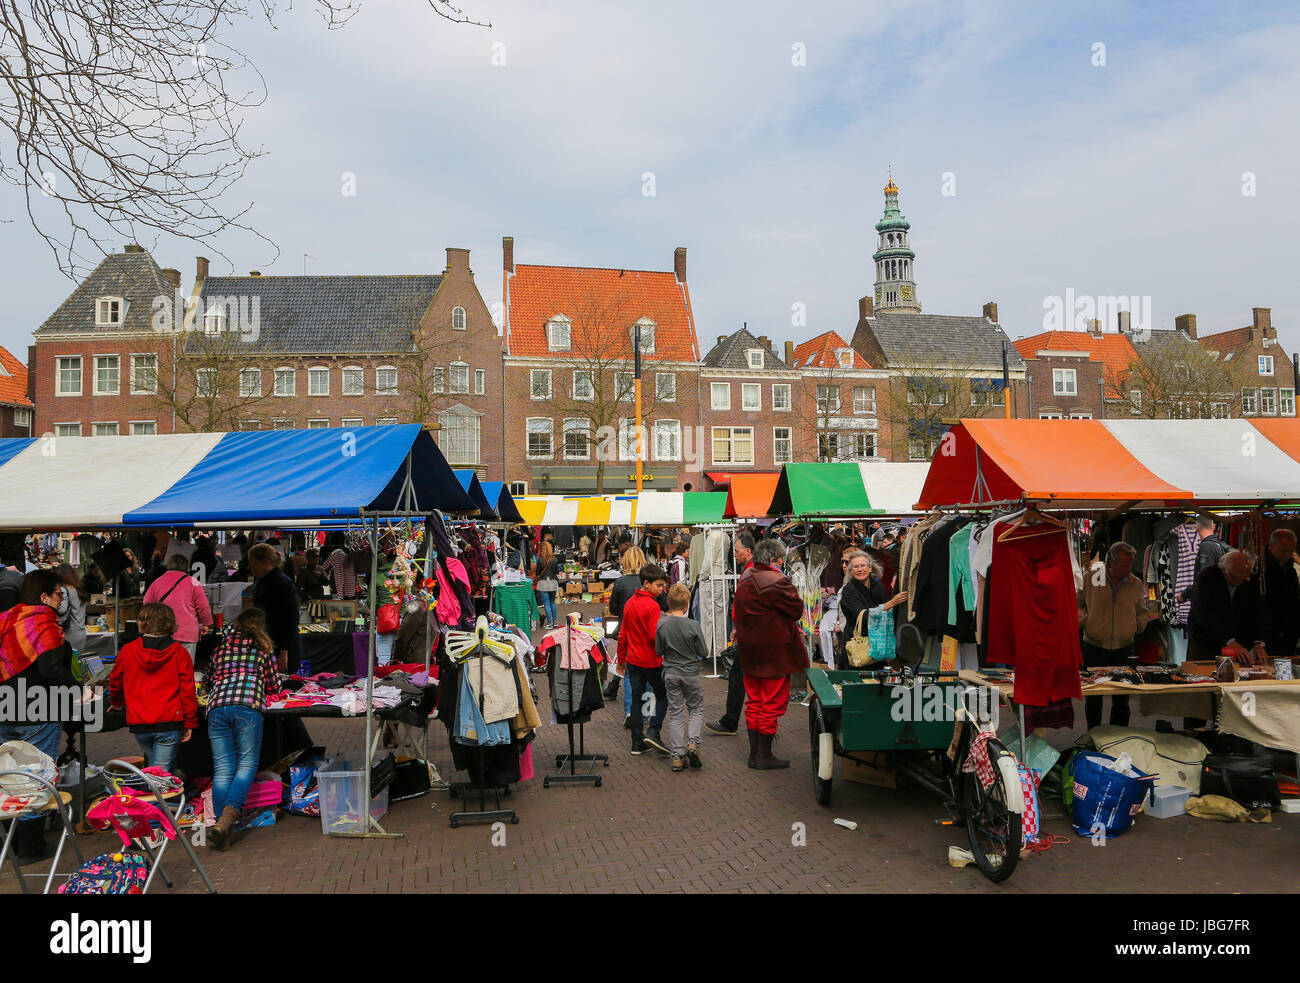 middelburg holland netherlands market stockfotos middelburg holland netherlands market bilder. Black Bedroom Furniture Sets. Home Design Ideas